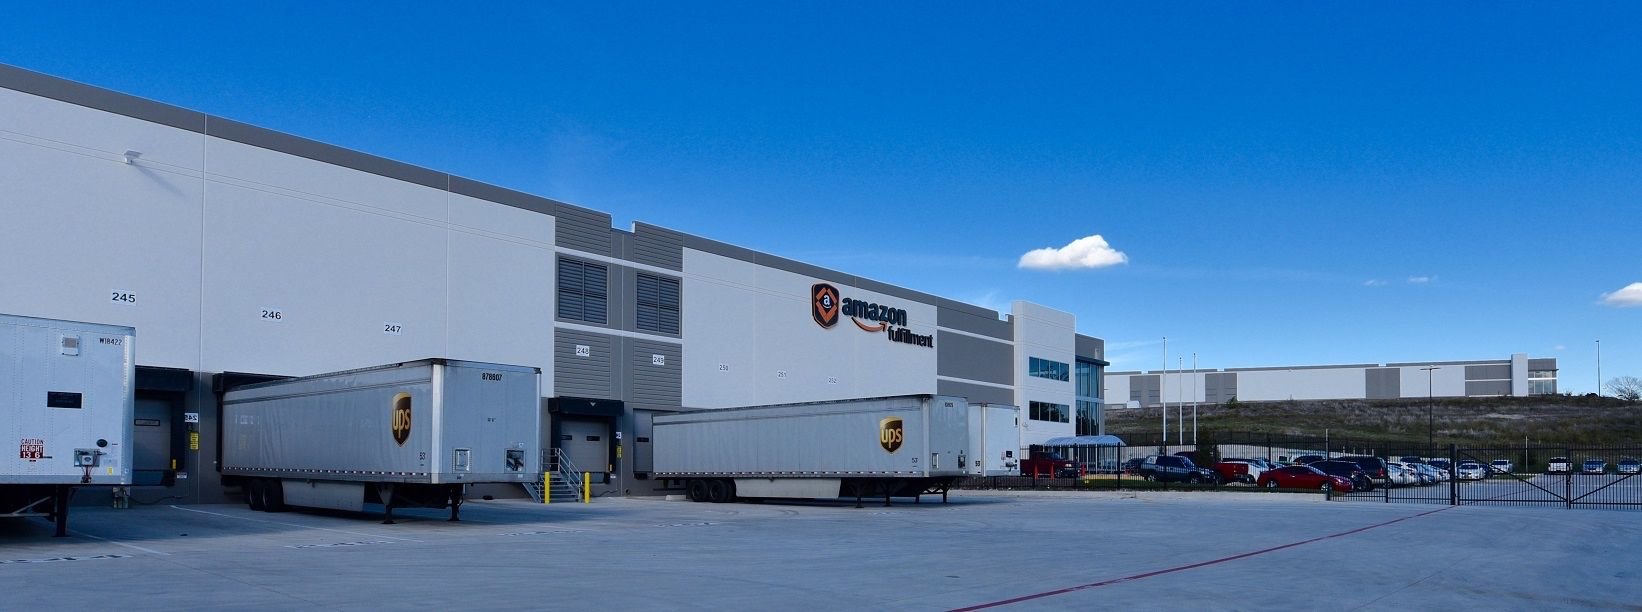 Amazon is the biggest warehouse tenant in North Texas.